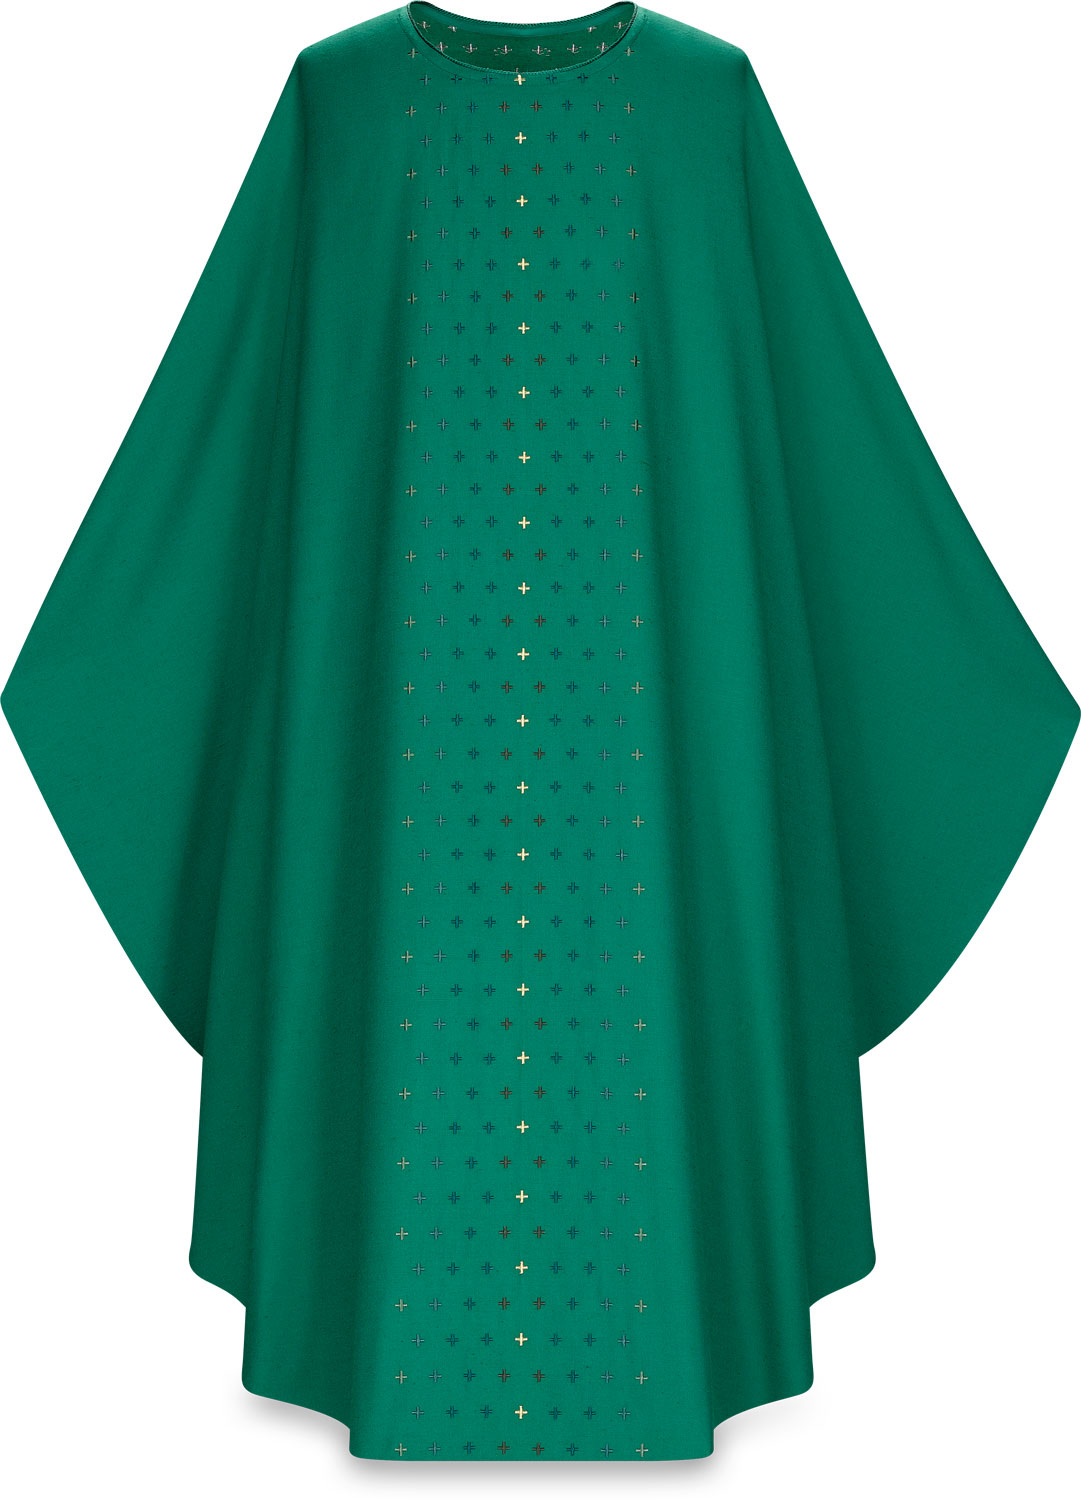 Chasuble | Green | 5225 | Slabbinck